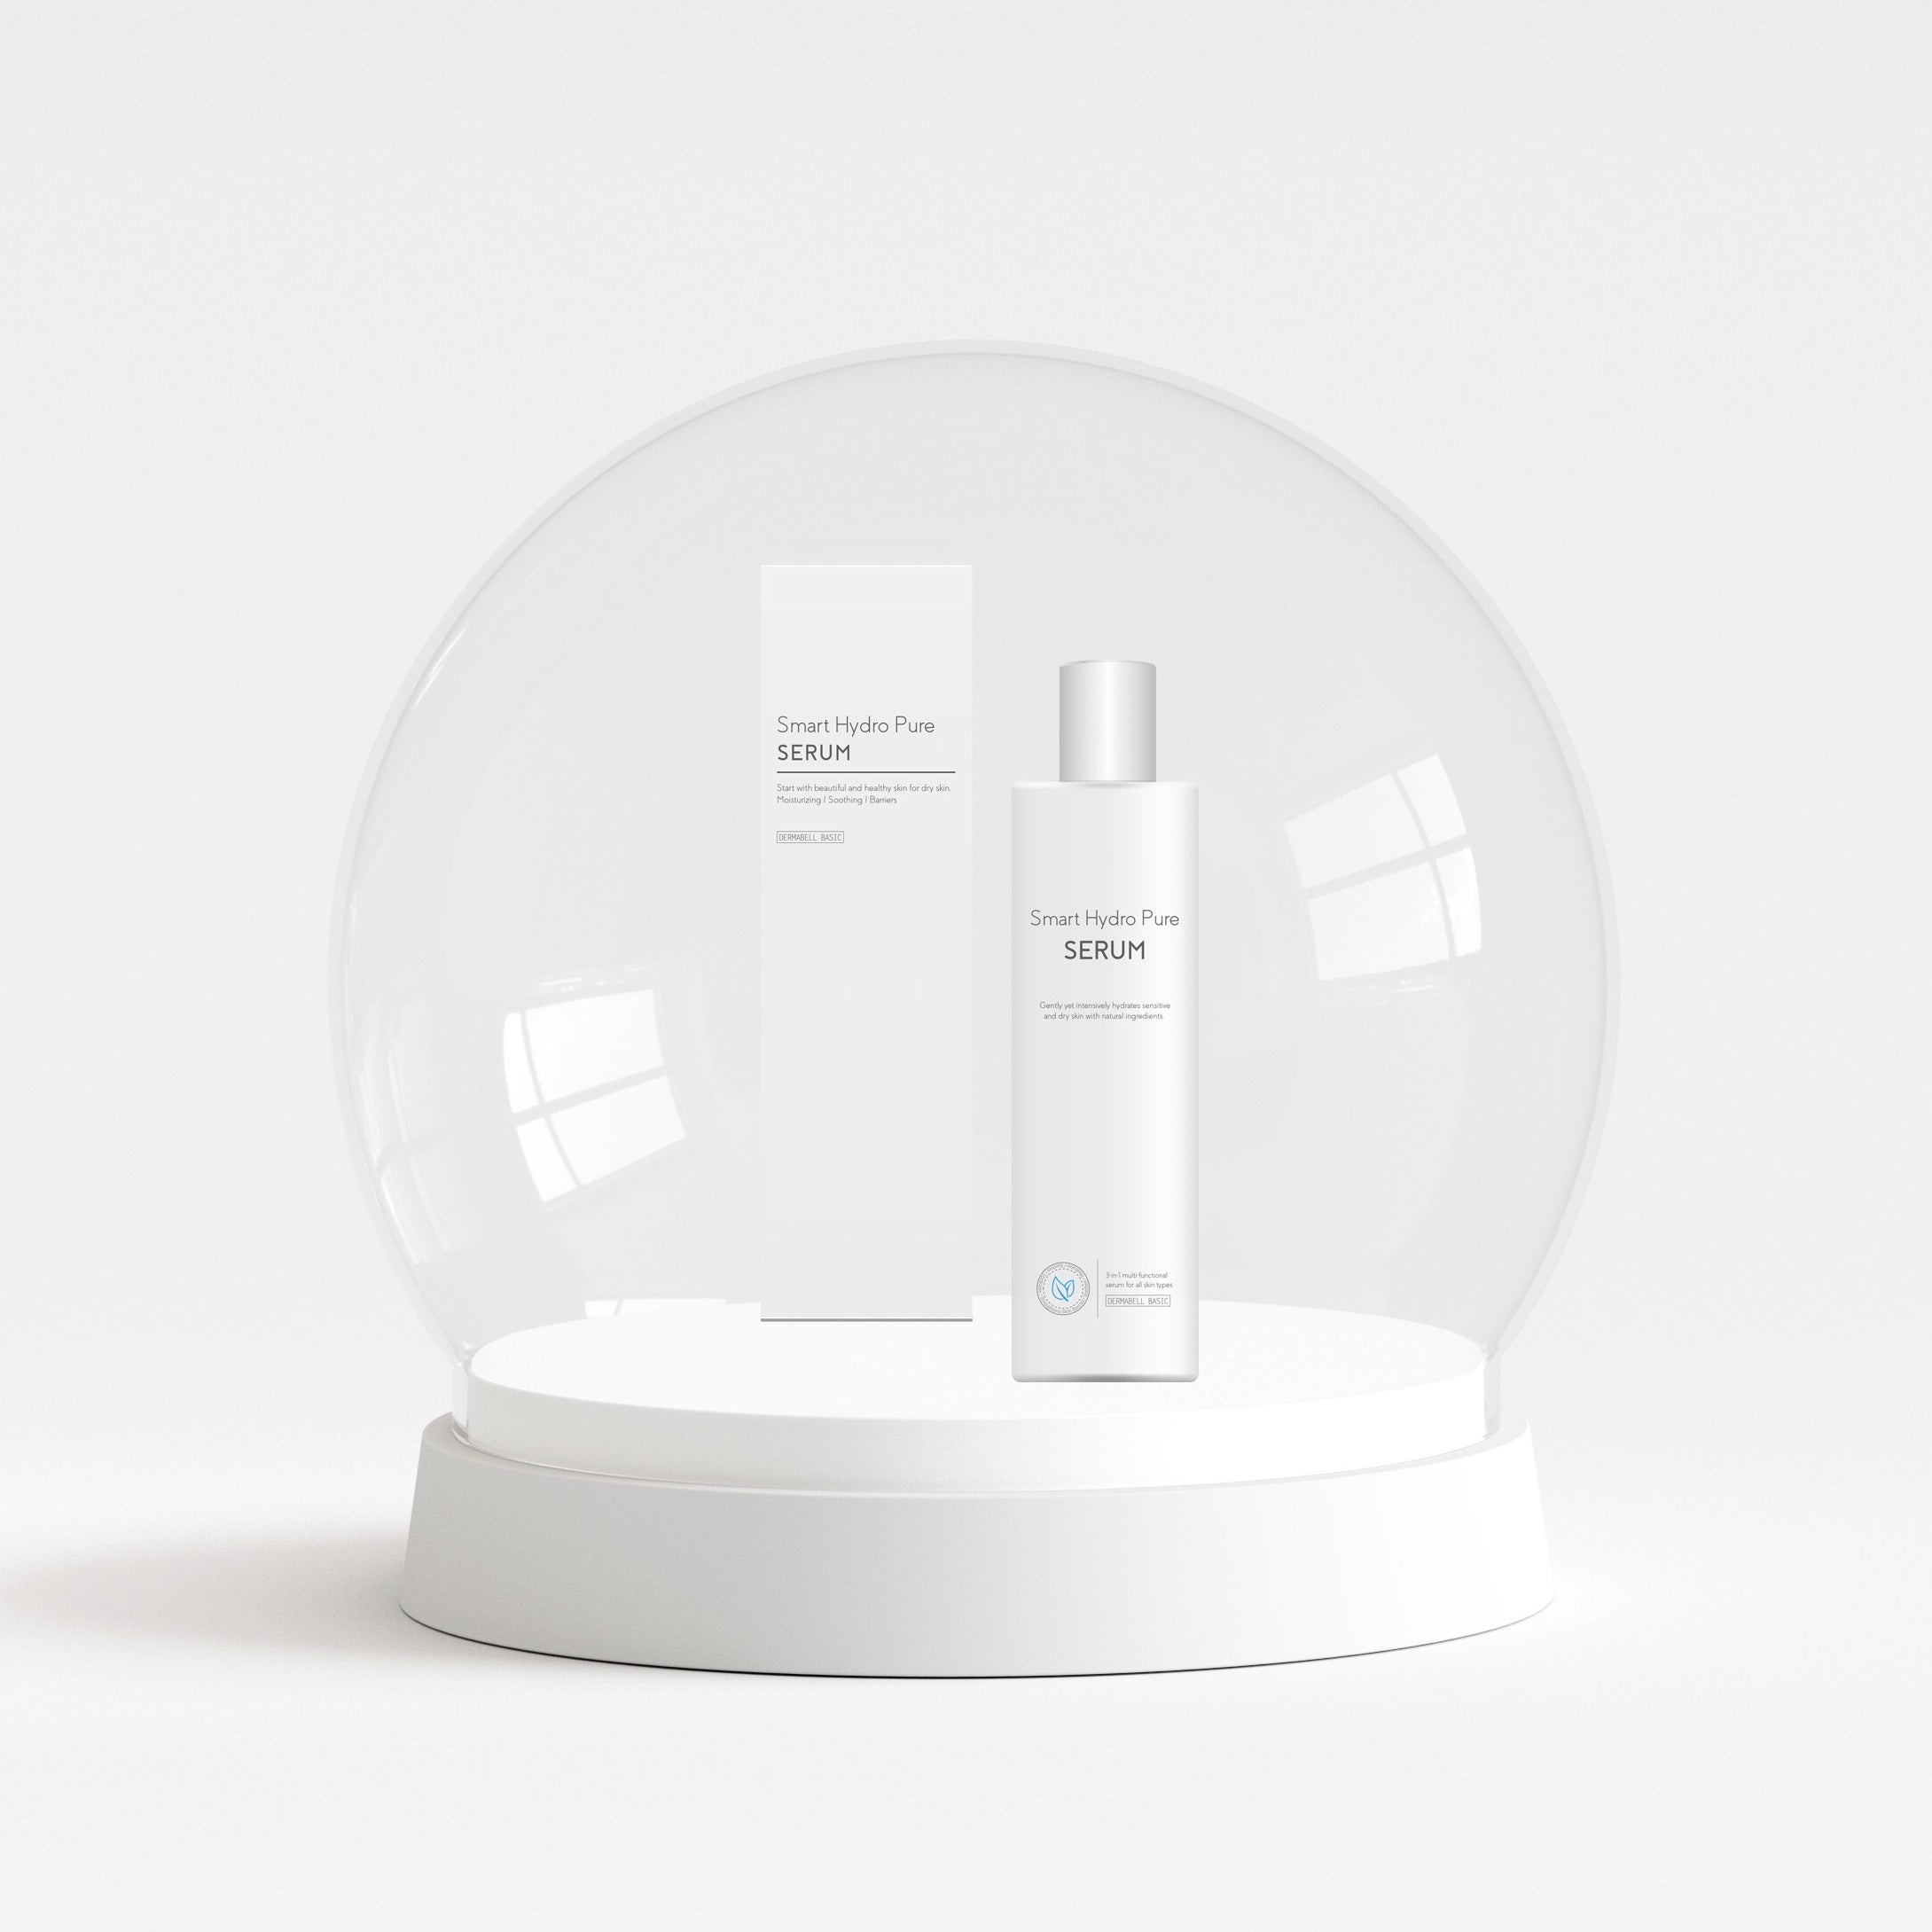 Smart Hydro Pure Serum  by Dermabell Basic. Serum. Skincare. Kbeauty. Cosmeceutical.